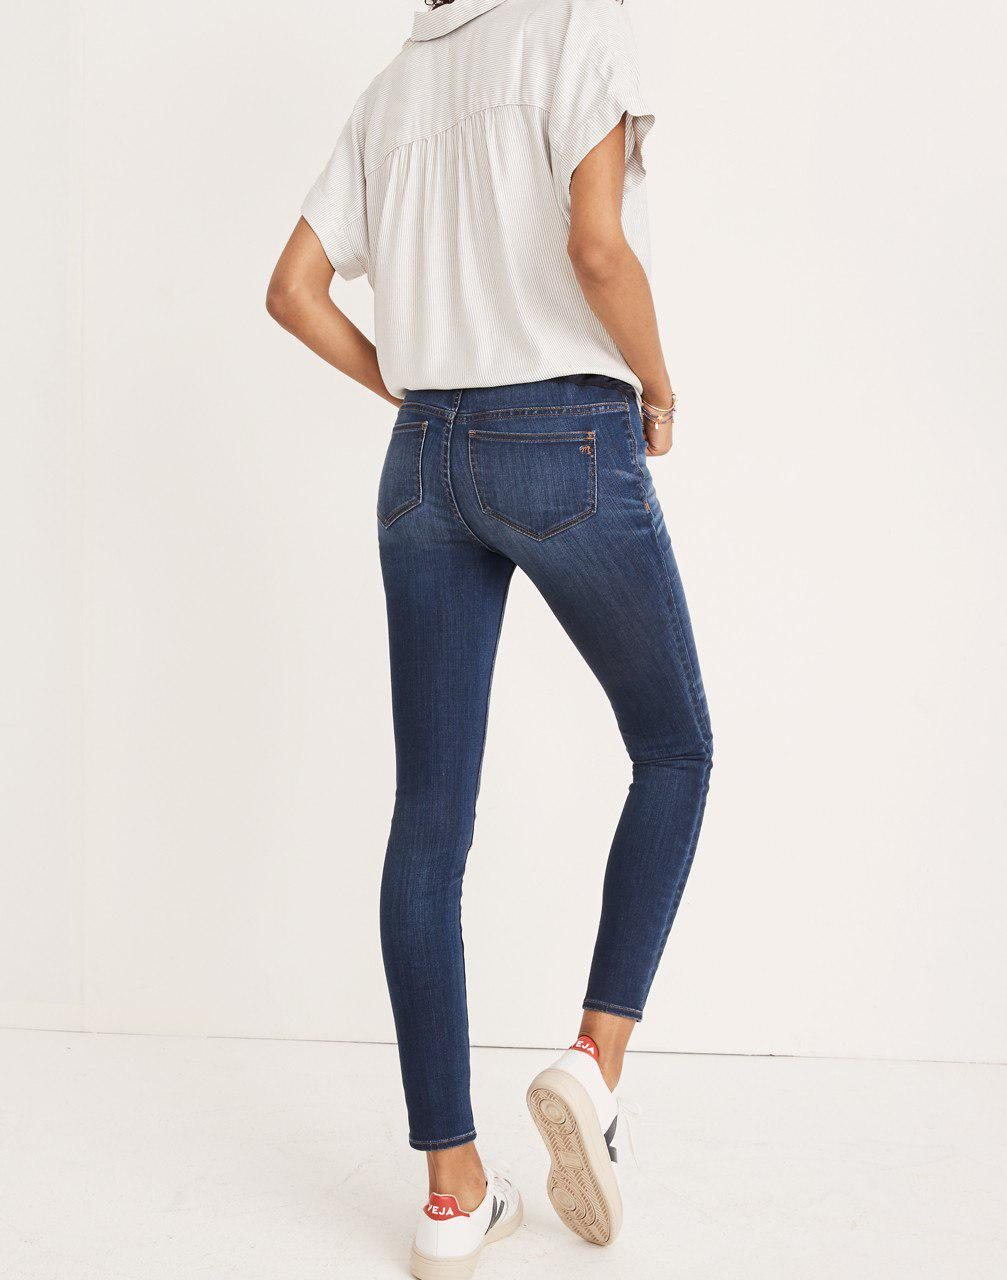 851cd5b7b786d Lyst - Madewell Maternity Over-the-belly Skinny Jeans In Danny Wash ...